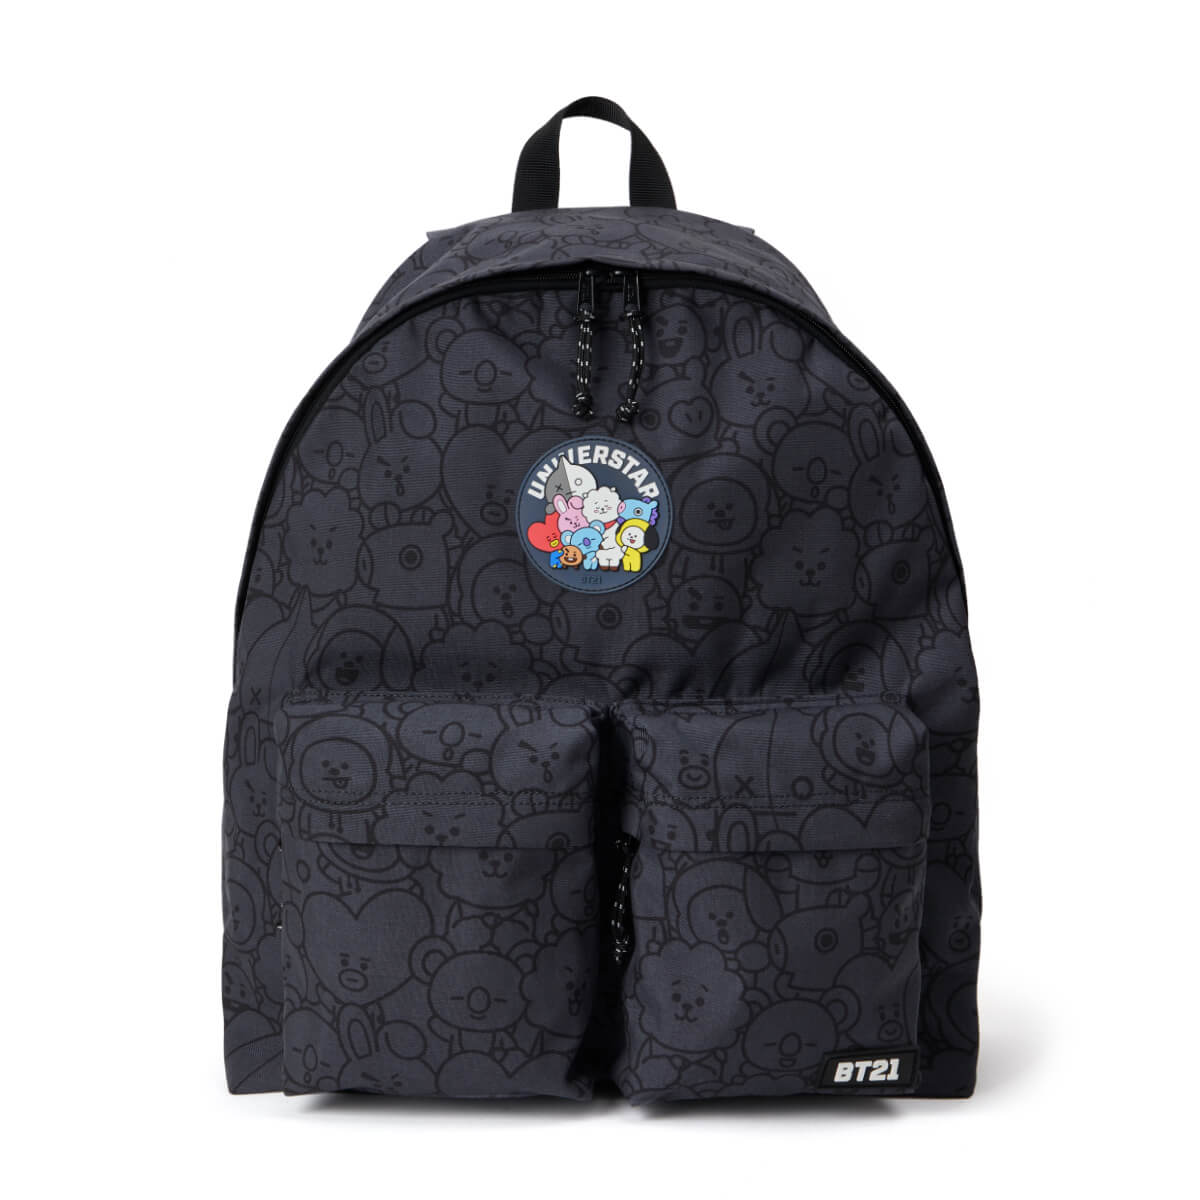 BT21 20 Heart Waggle Waggle Two Pocket Backpack Dark Grey